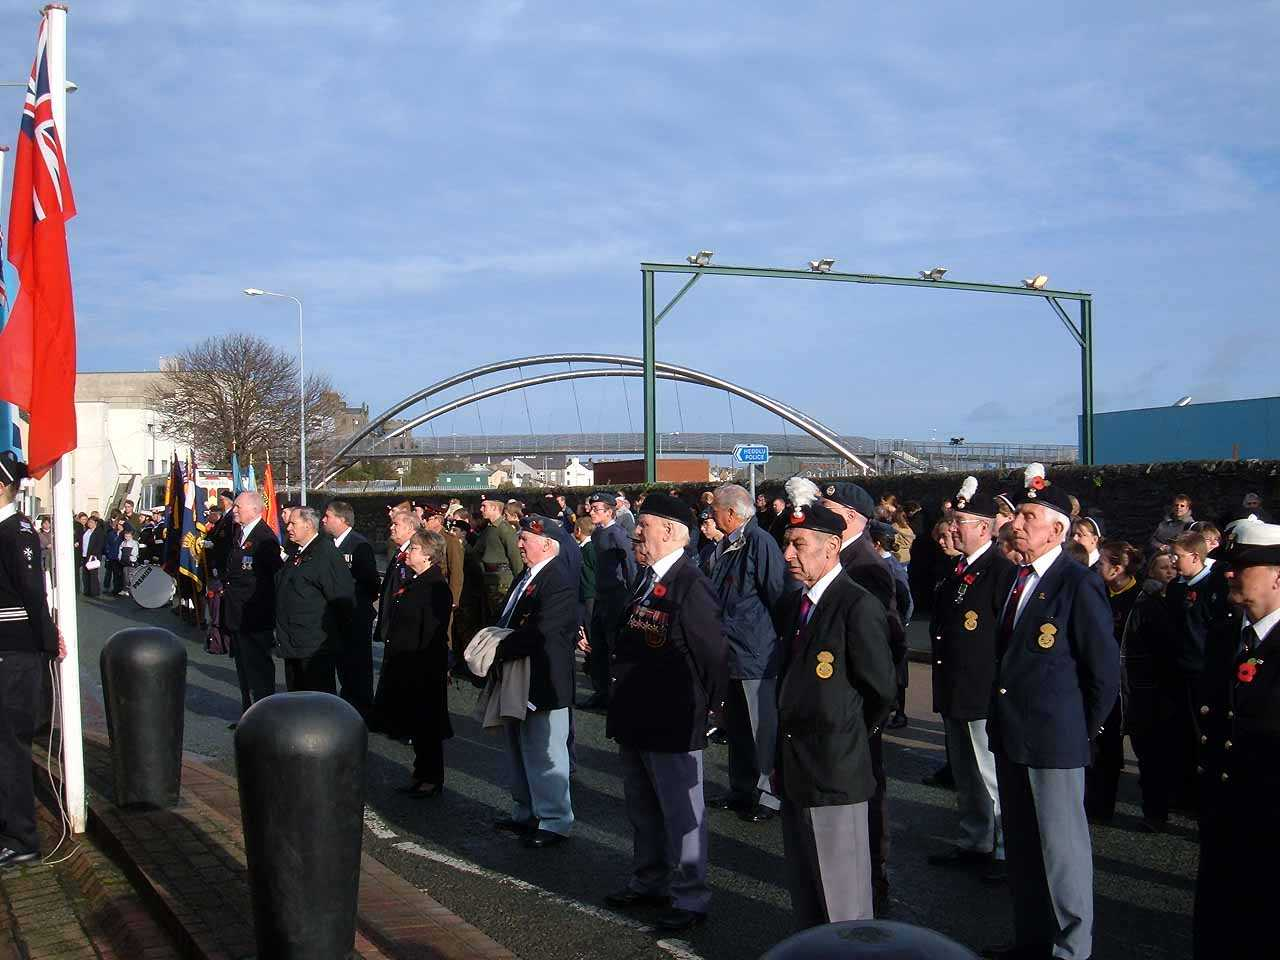 Anglesey, Holyhead, Remembrance Sunday 2006 - Veterans on Parade